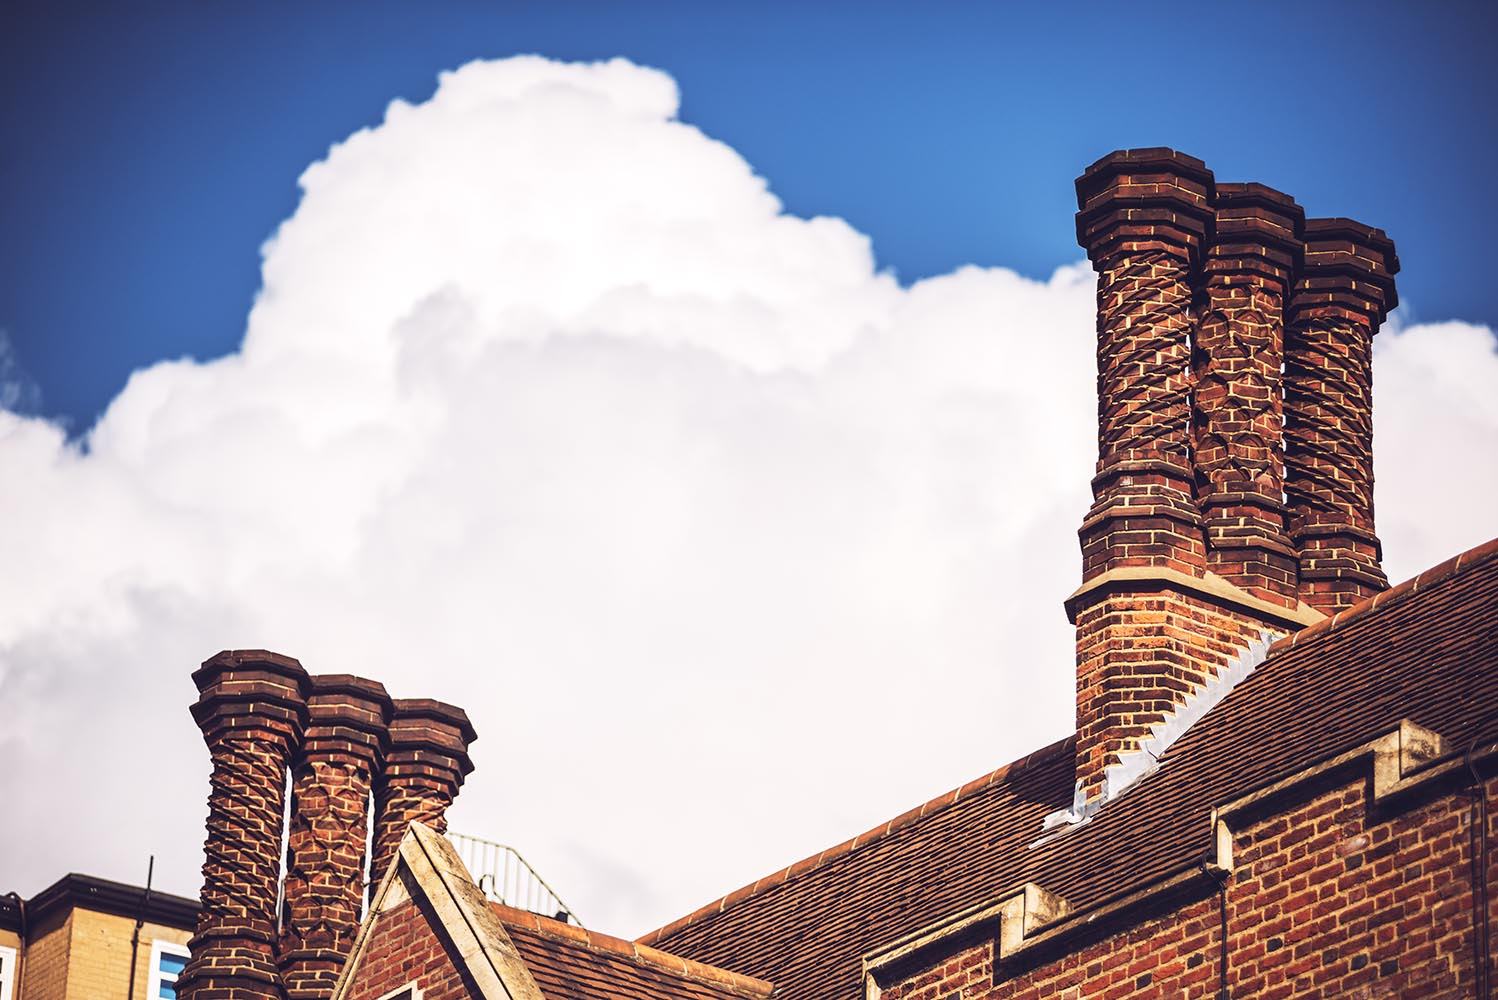 Brick chimney over clouds.